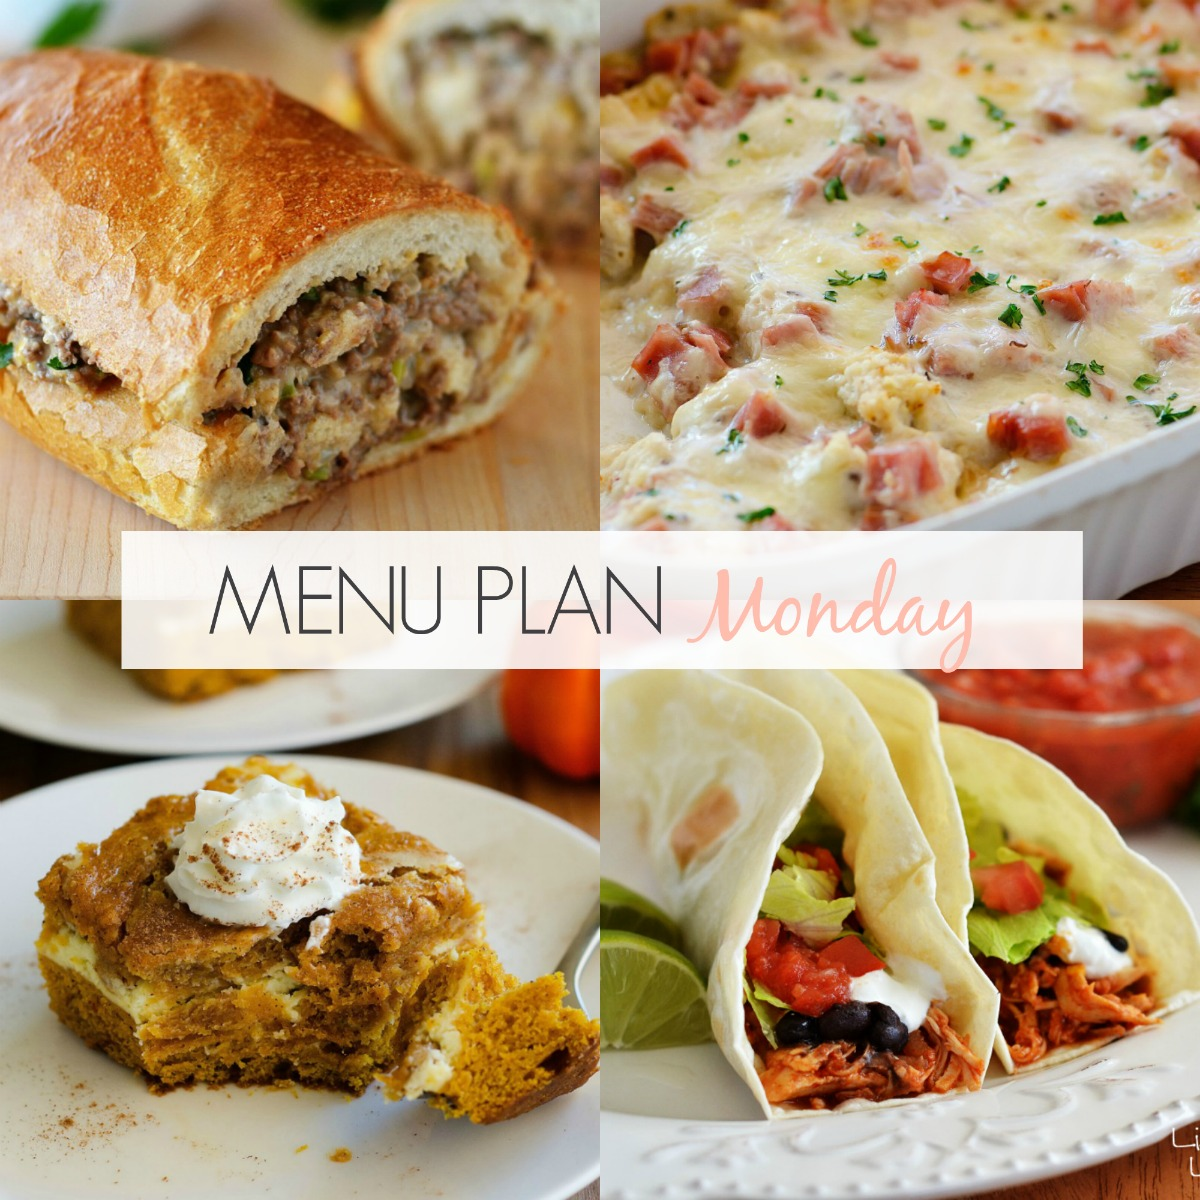 If you're looking for some great dinner ideas check out Menu Plan Monday!